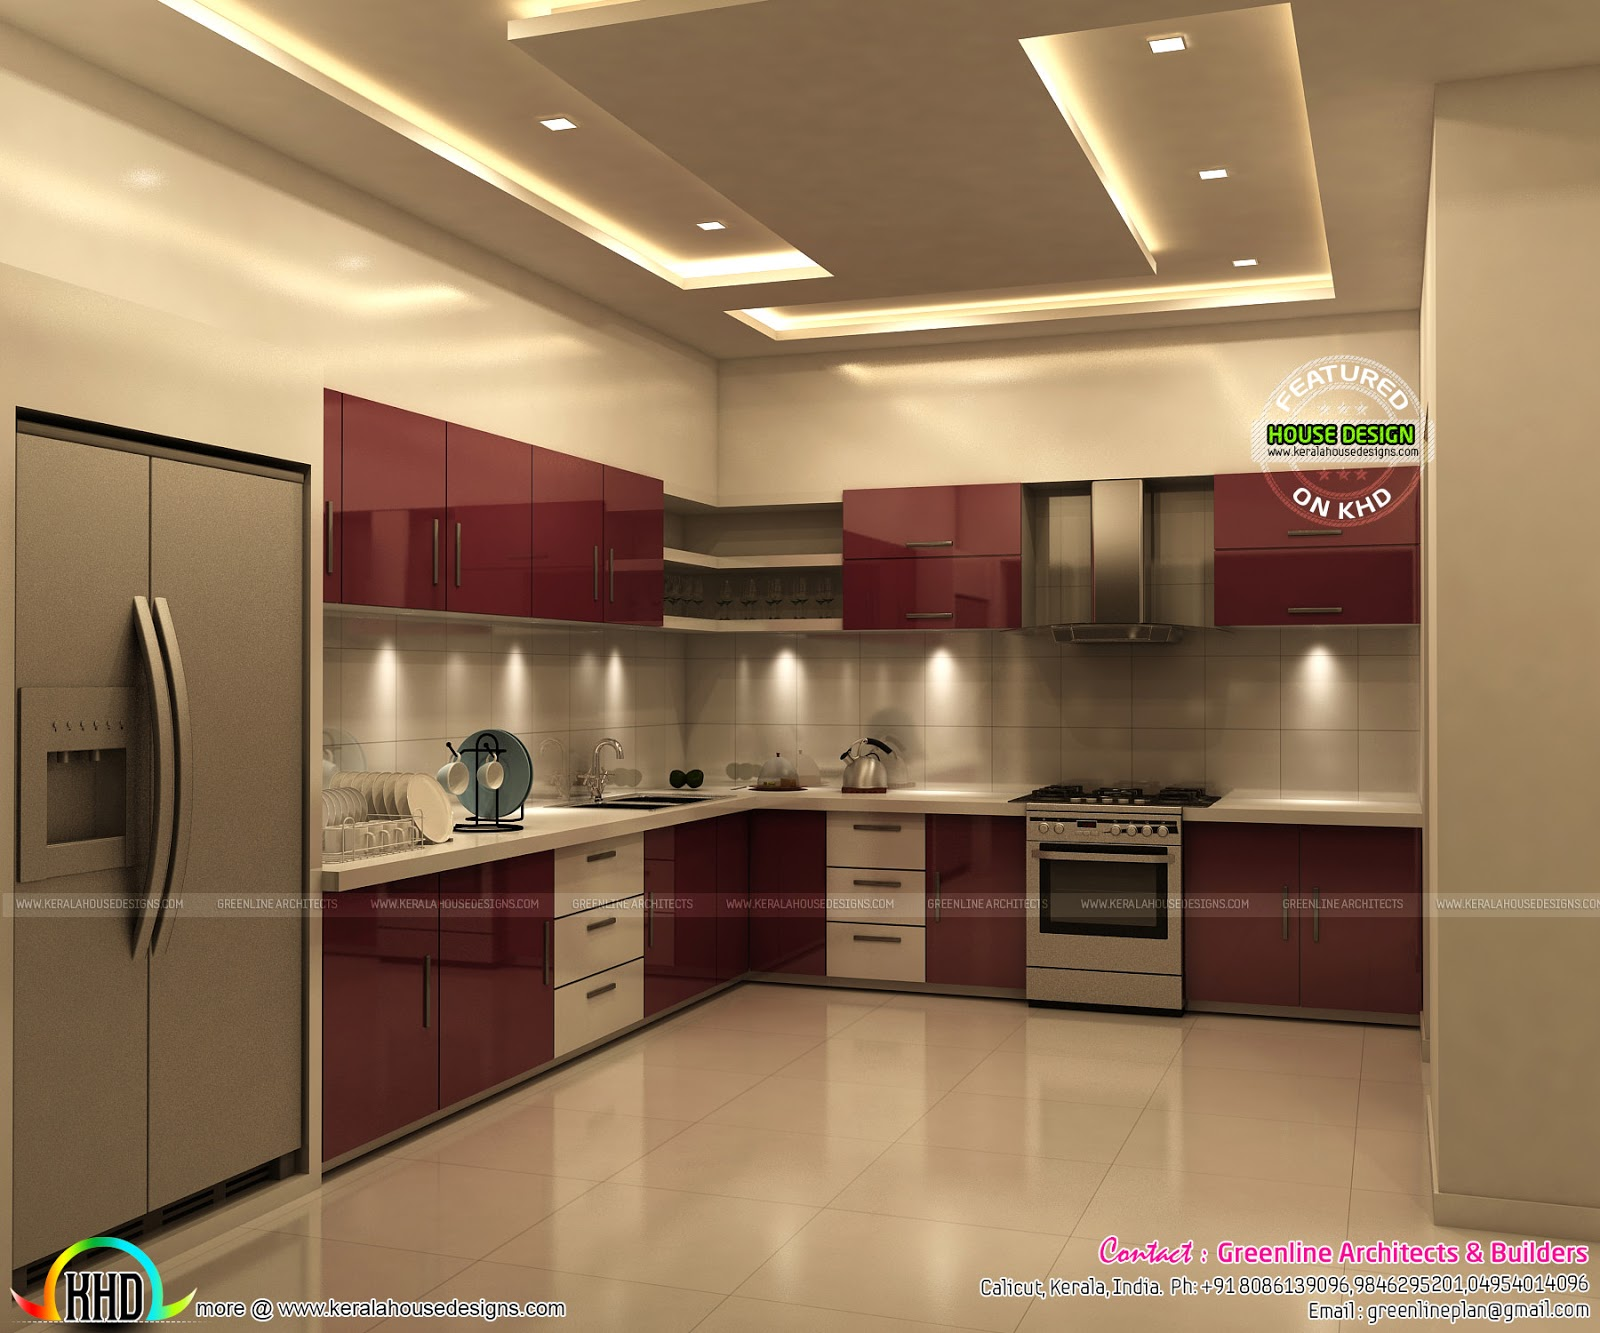 Superb kitchen and bedroom interiors kerala home design for Interior designs photo